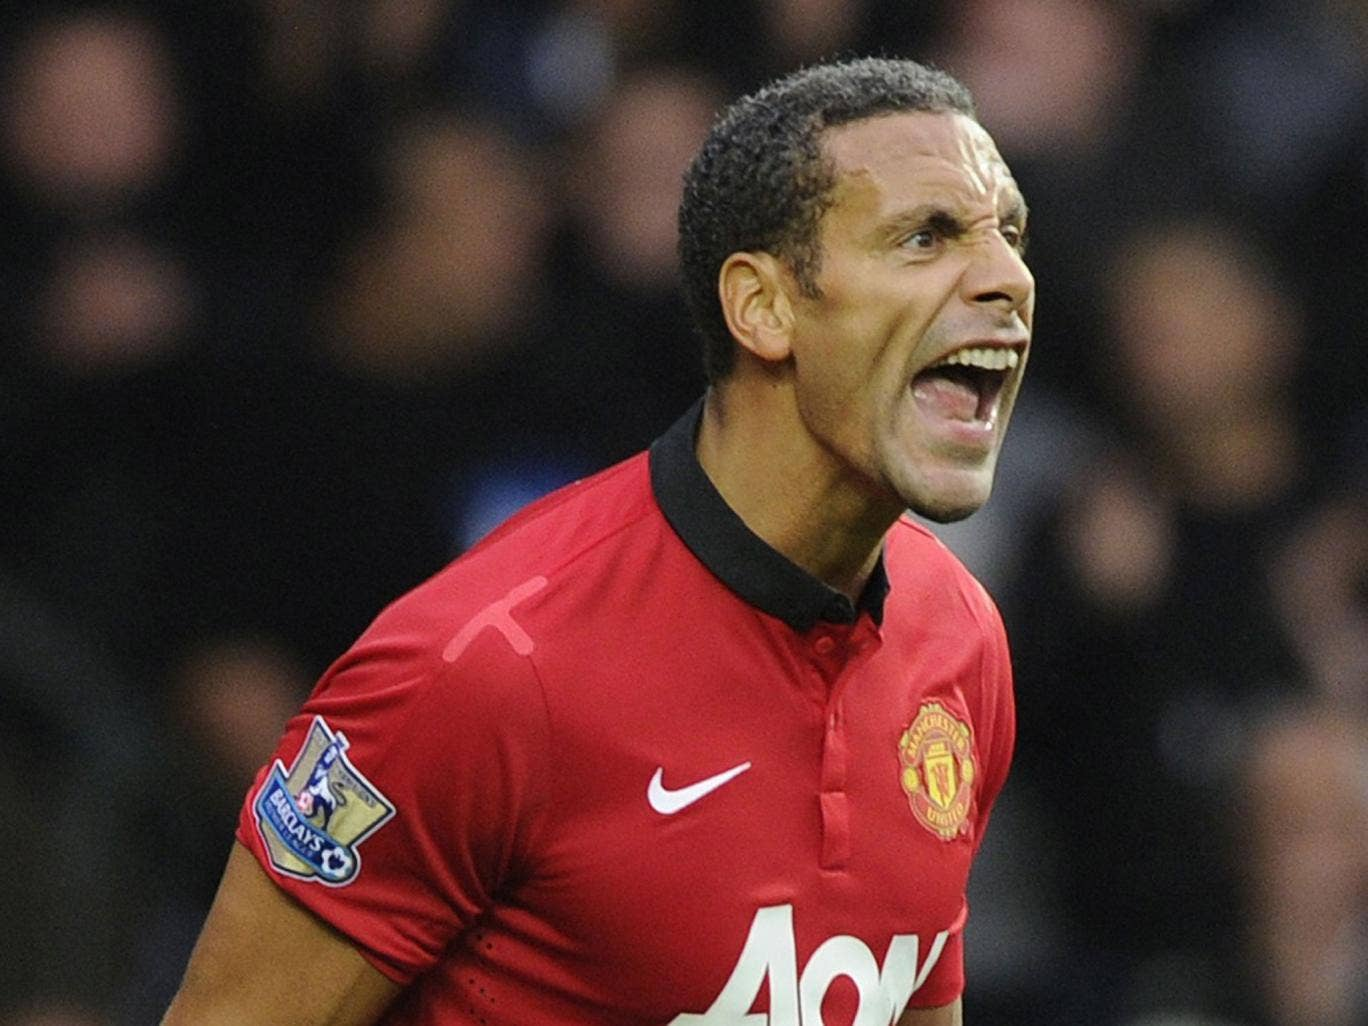 Rio Ferdinand: The United  defender was fined £45,000 for a tweet about Ashley Cole